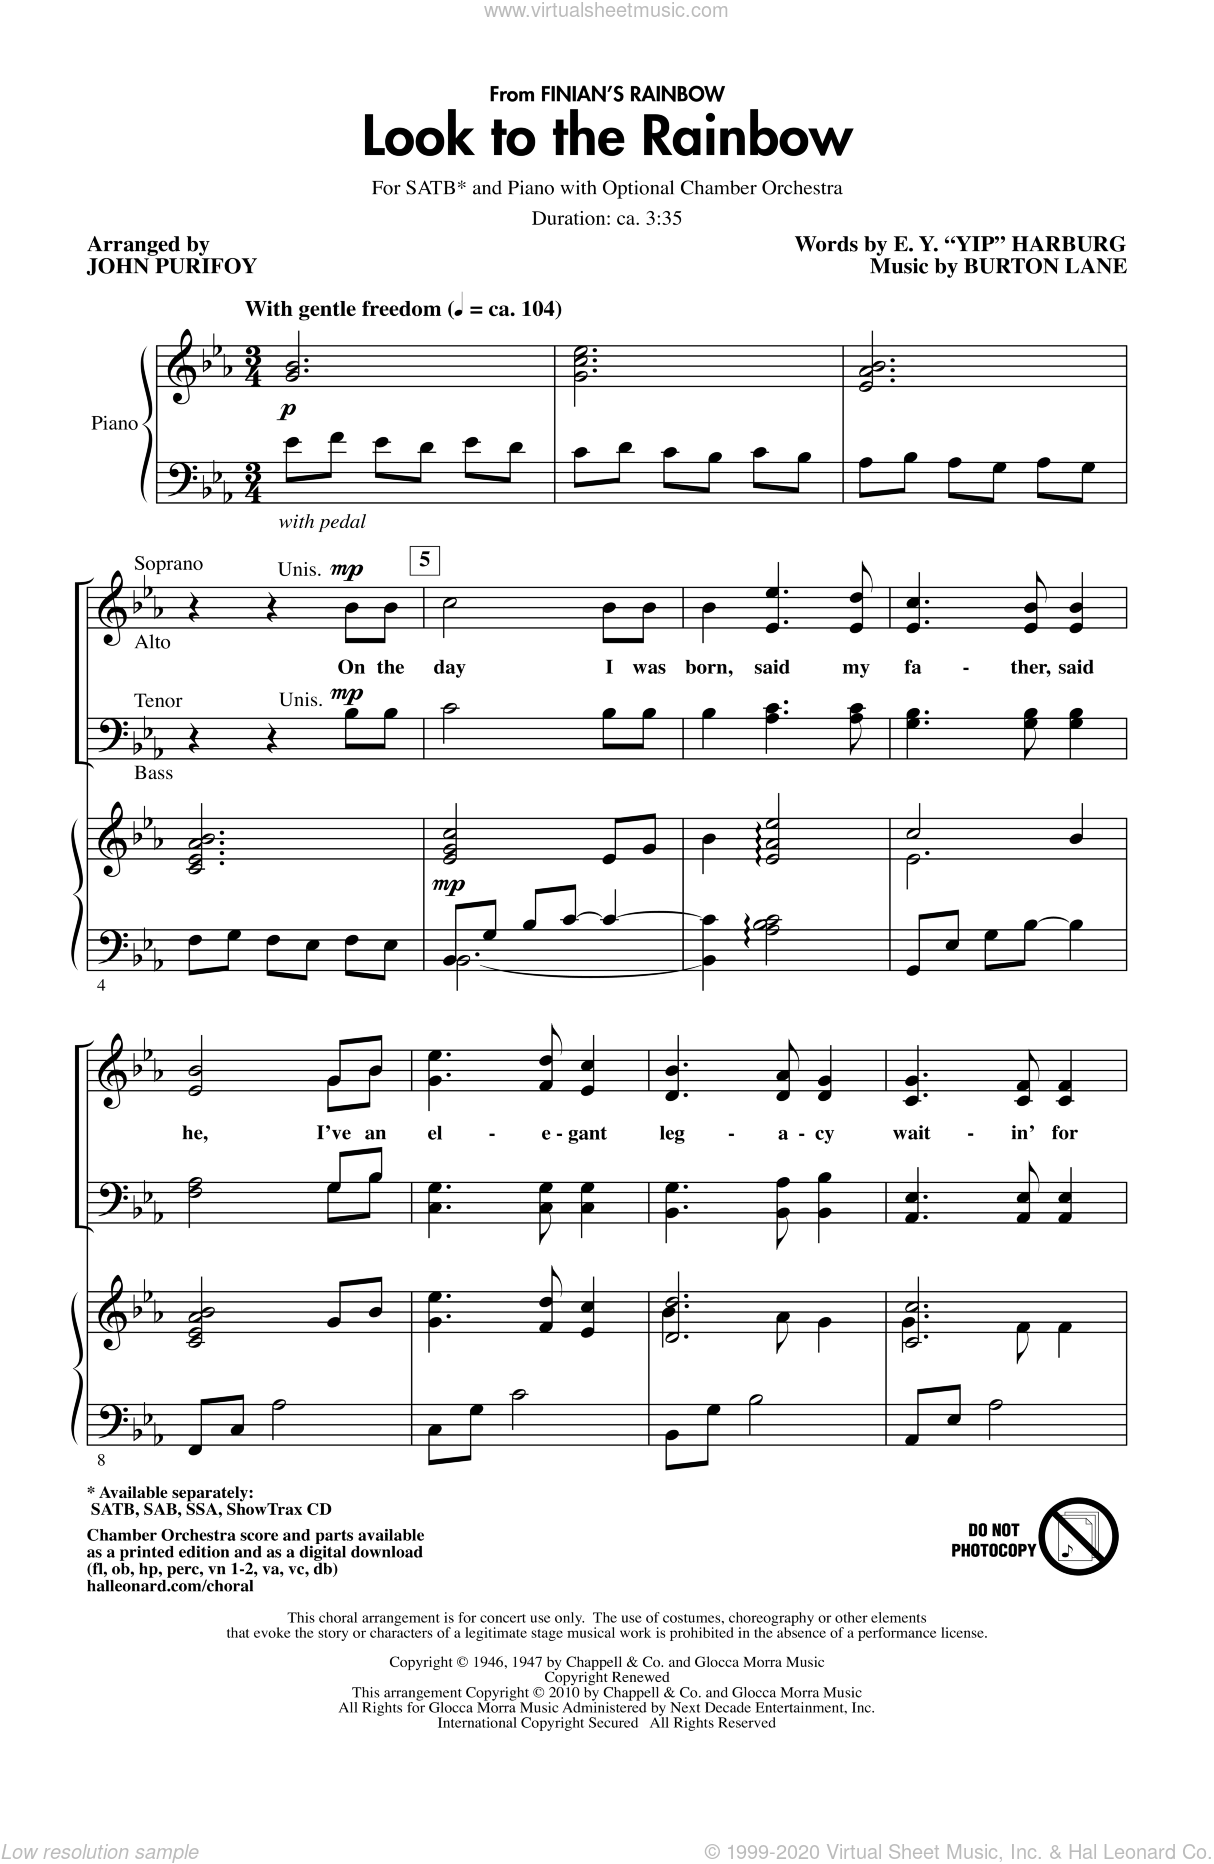 Look To The Rainbow (from Finian's Rainbow) sheet music for choir and piano (SATB) by Burton Lane, E.Y. Harburg and John Purifoy. Score Image Preview.